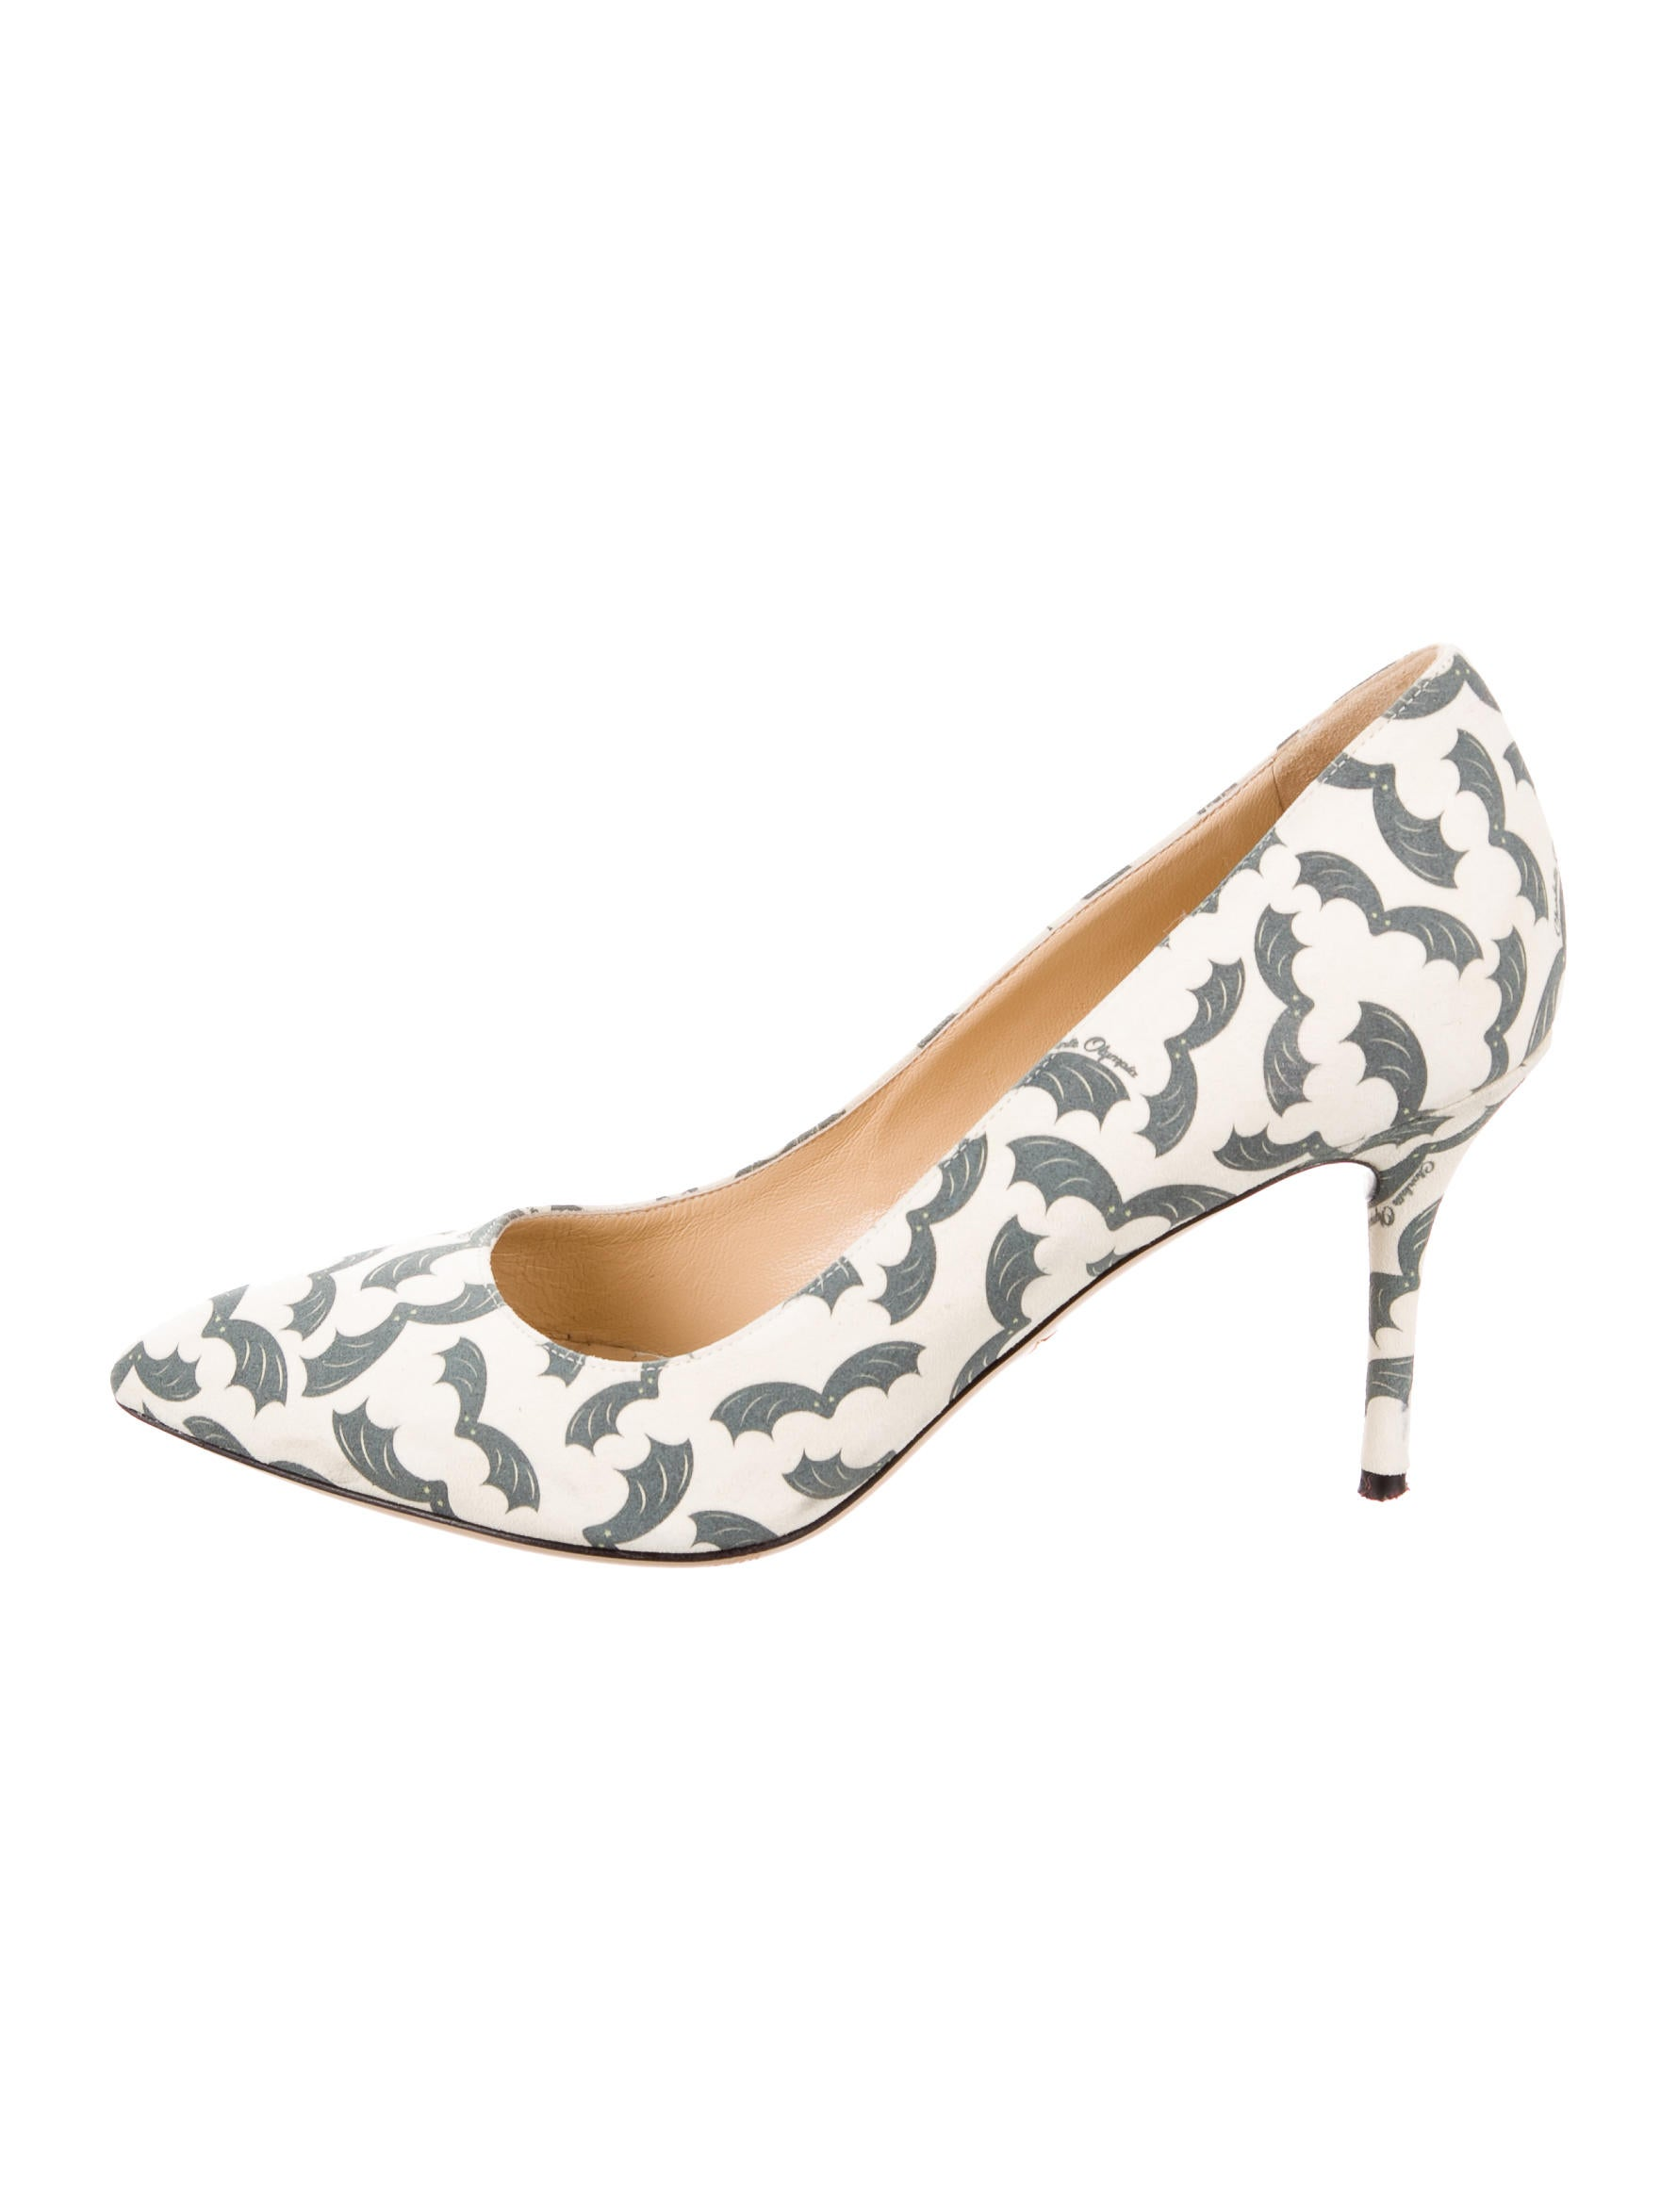 Charlotte Olympia Desiree Bat Print Pumps cheap sale pictures clearance cost OTr1qbu